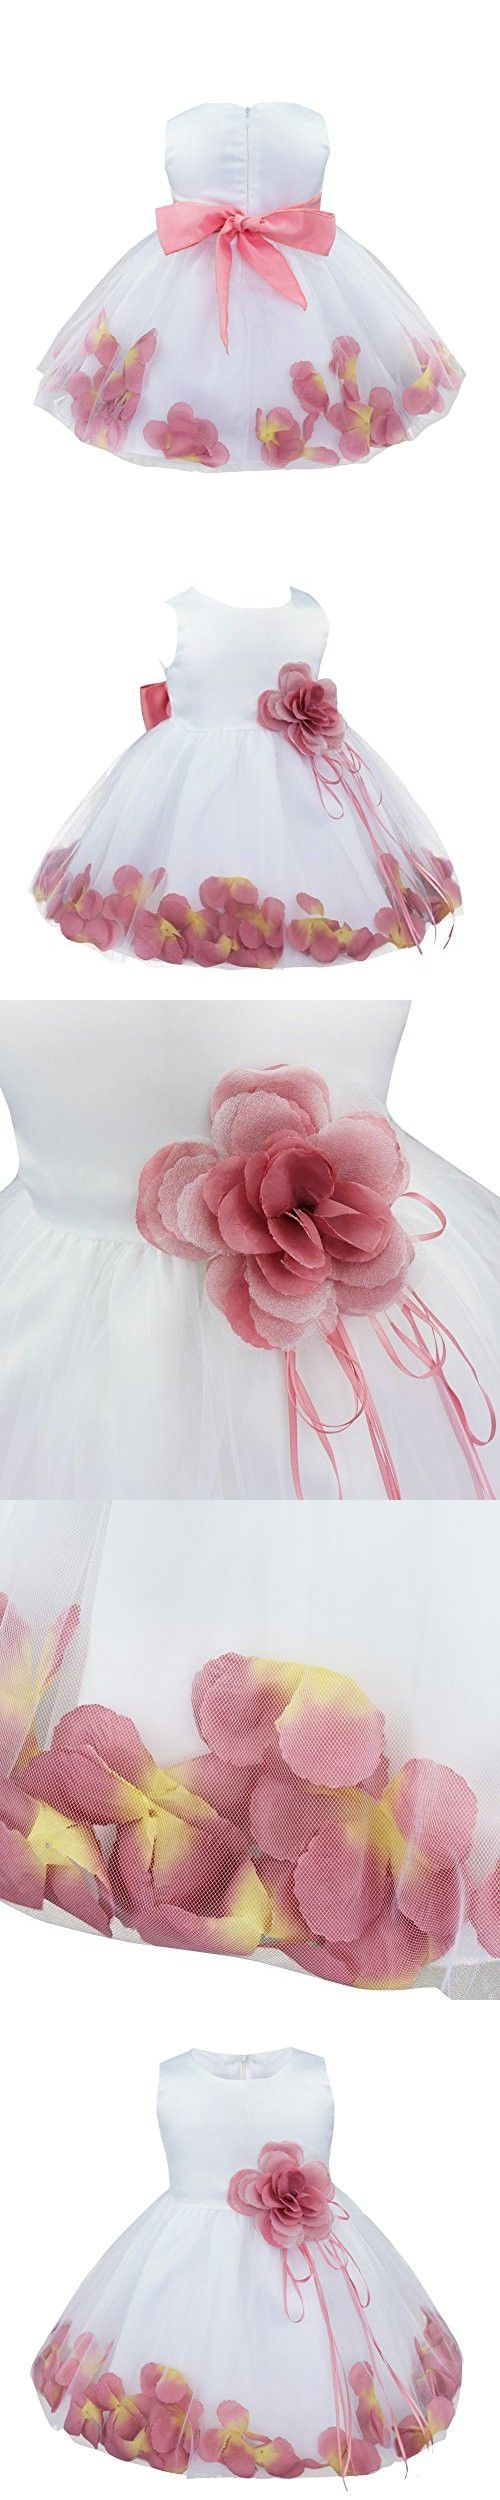 7f2af21ab966 FEESHOW Baby Girls Petals Flower Wedding Pageant Princess Party ...